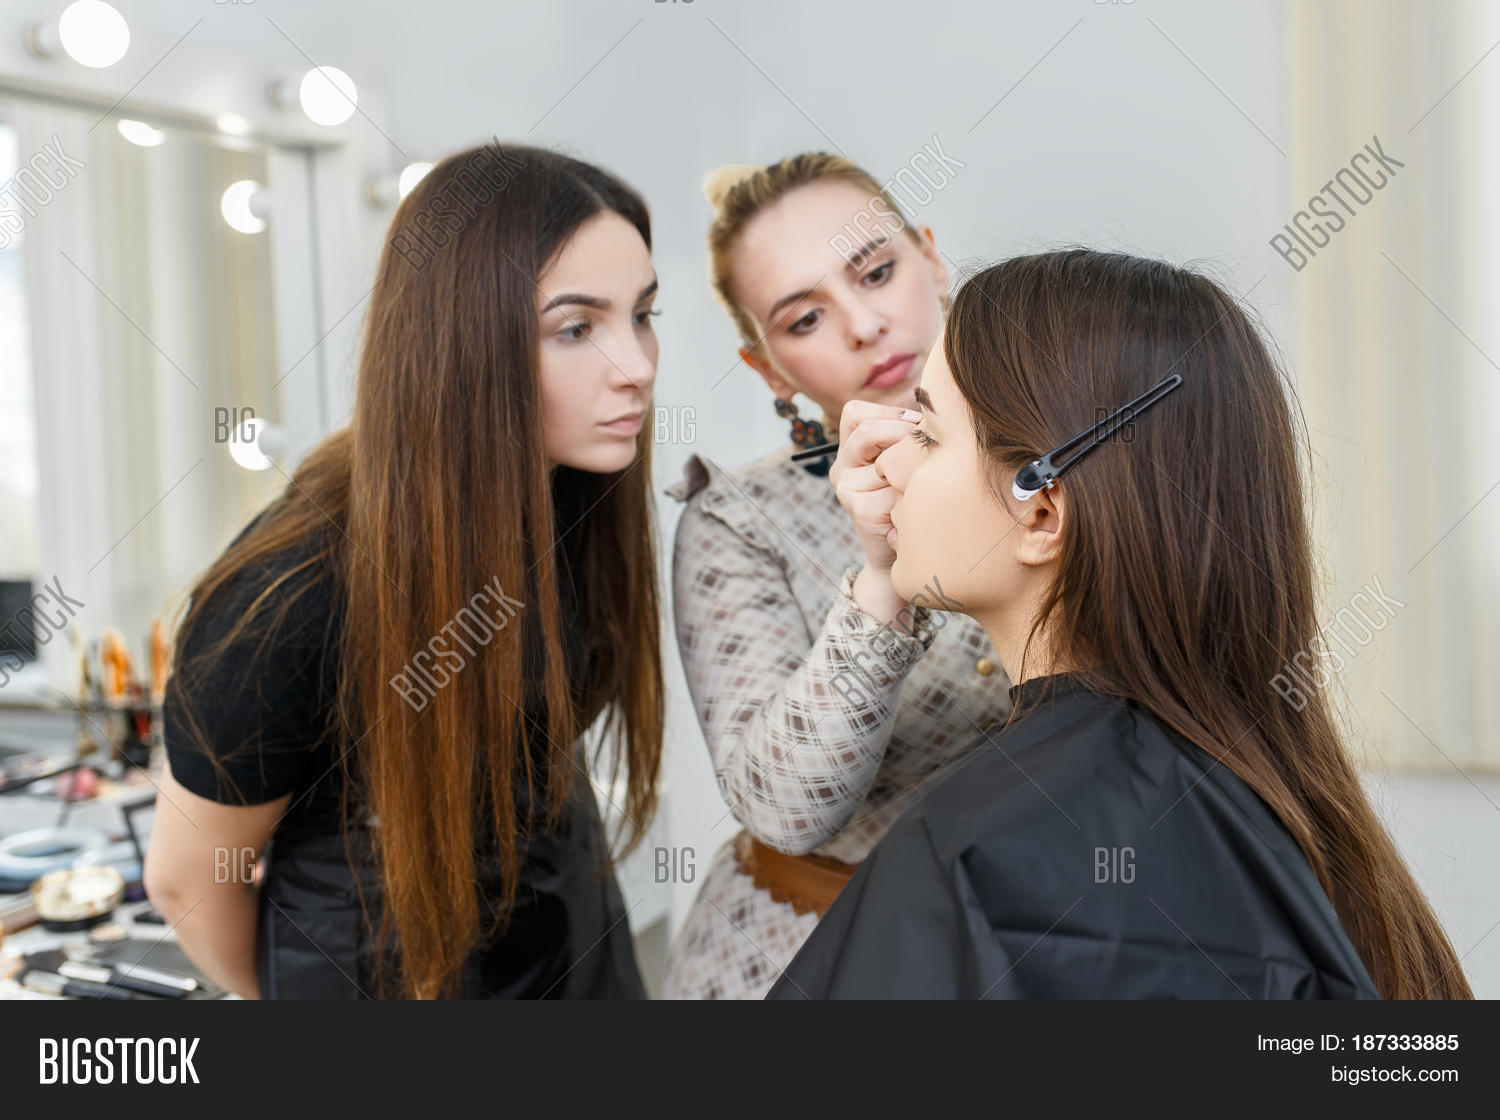 Makeup Course Beauty Image & Photo (Free Trial) | Bigstock